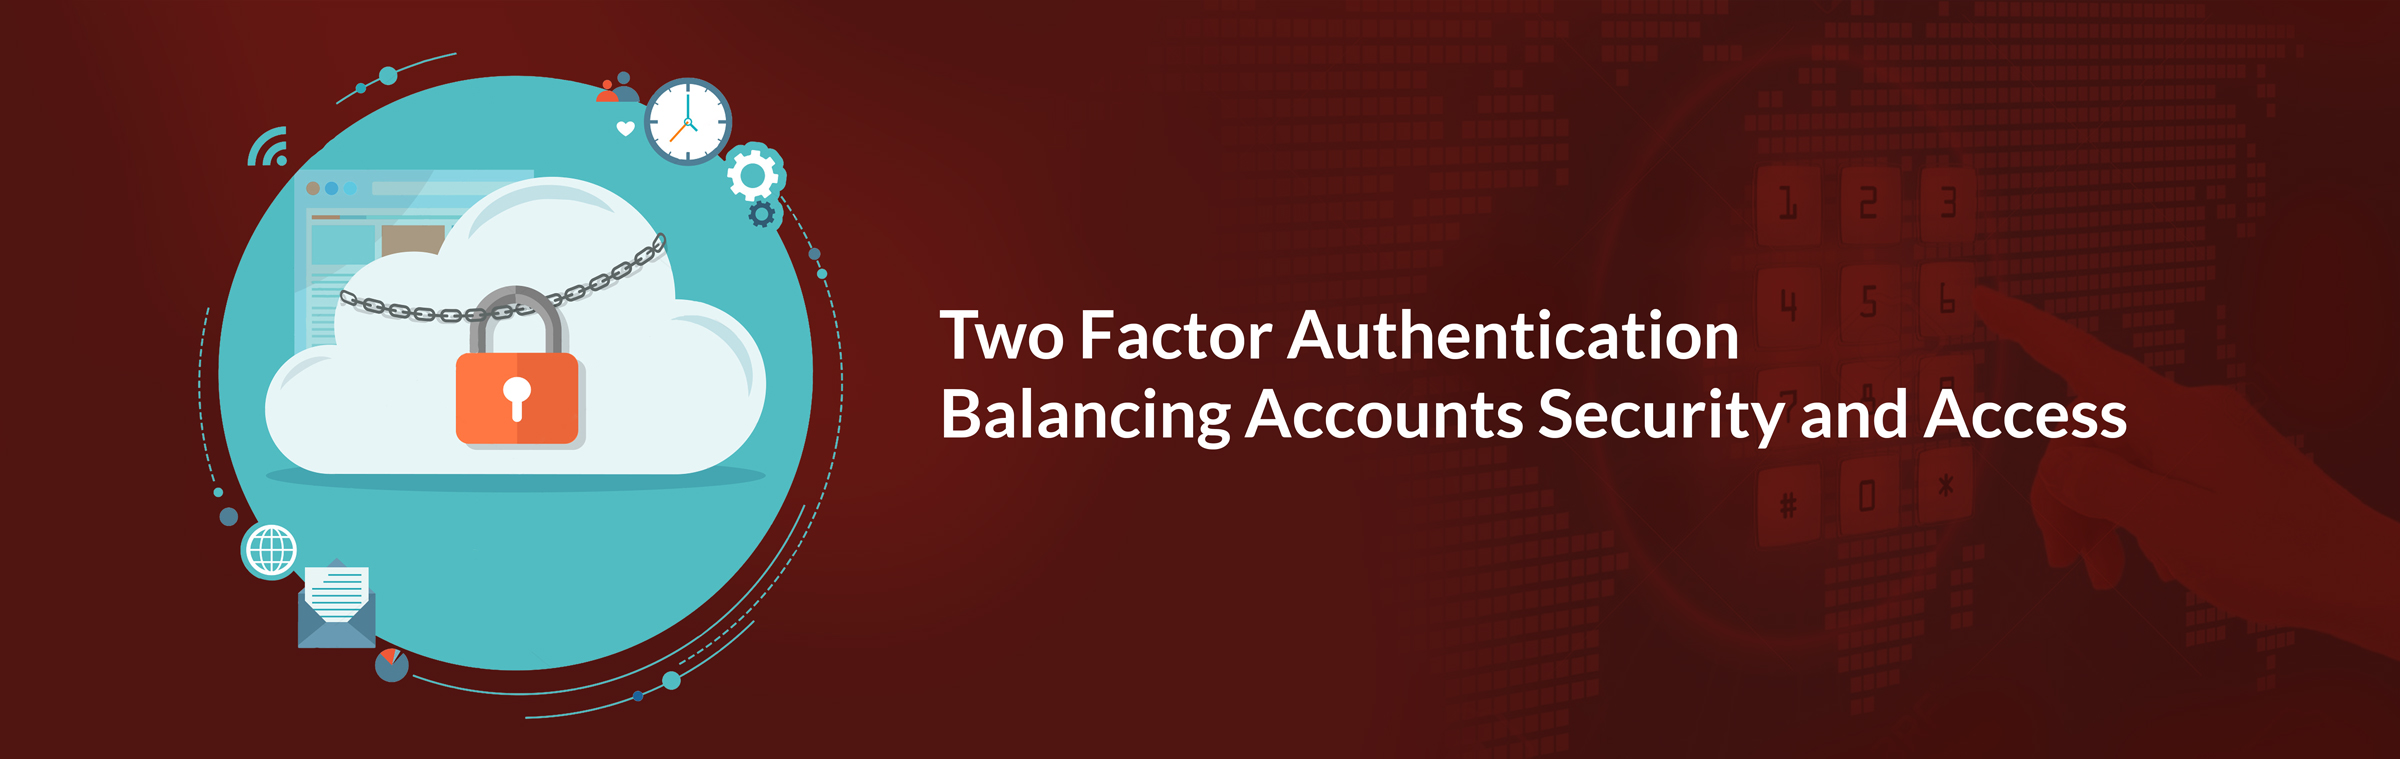 Two Factor Authentication: Balancing Accounts Security and Access